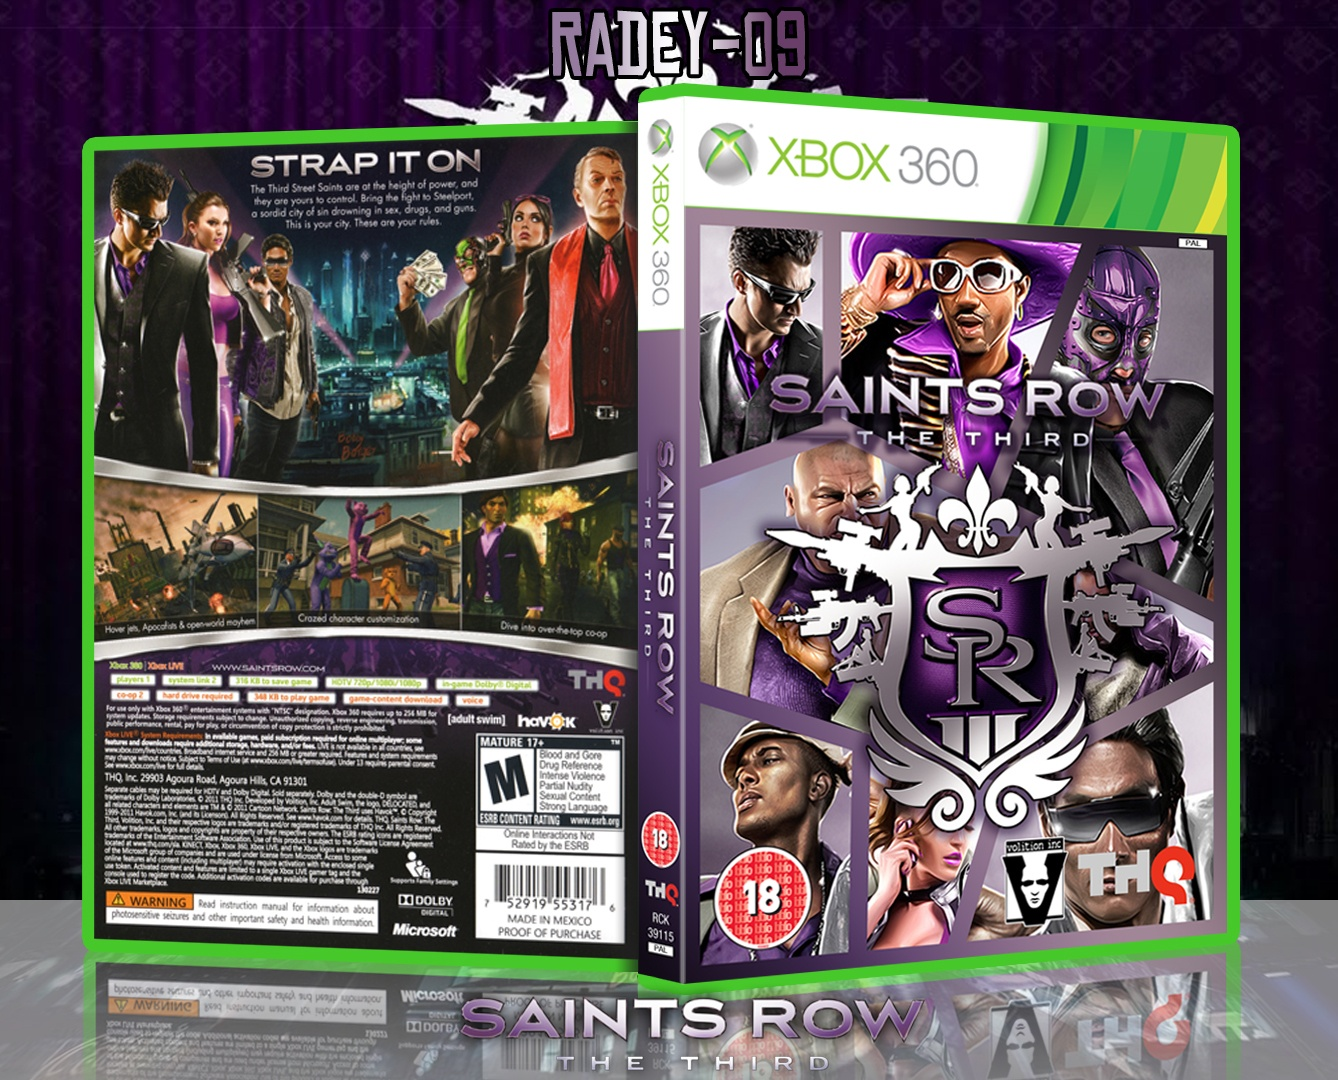 saints row  the third xbox 360 box art cover by radey